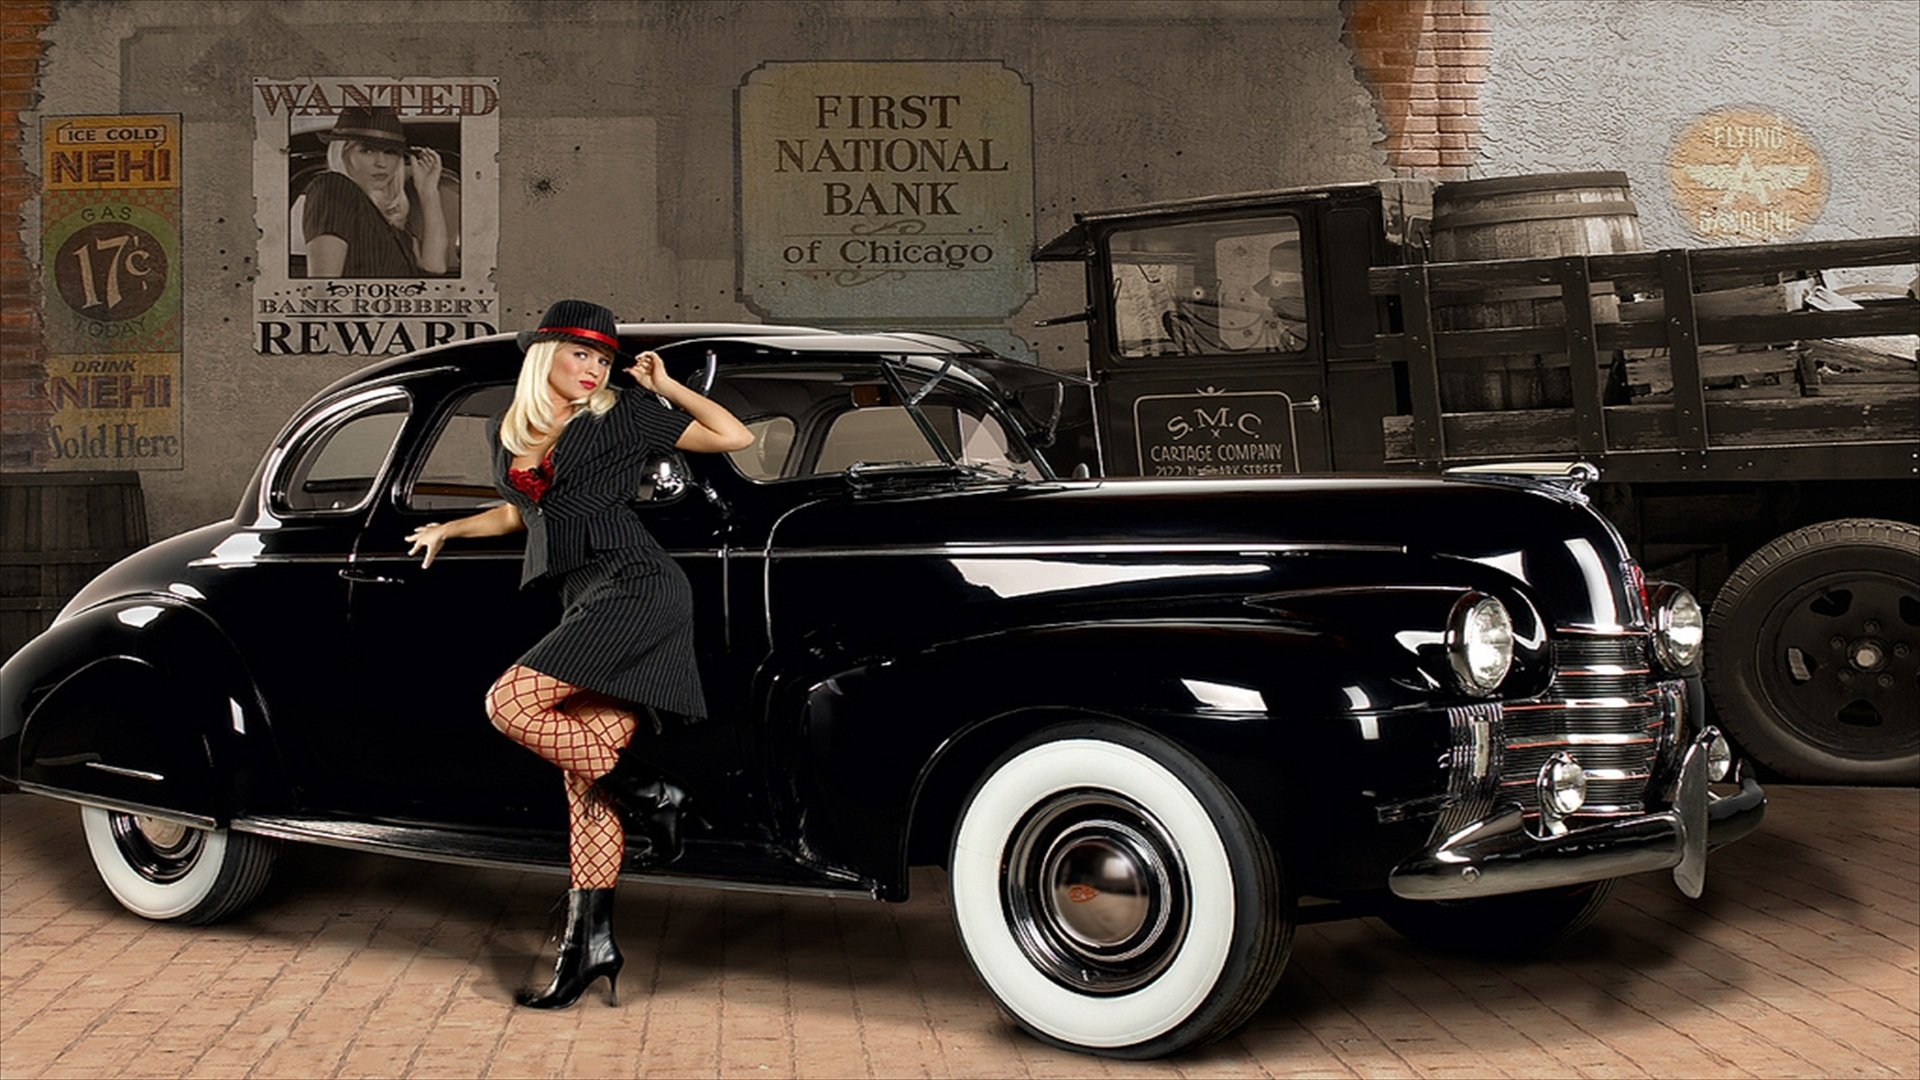 Girls & Cars Full HD Wallpaper And Background Image